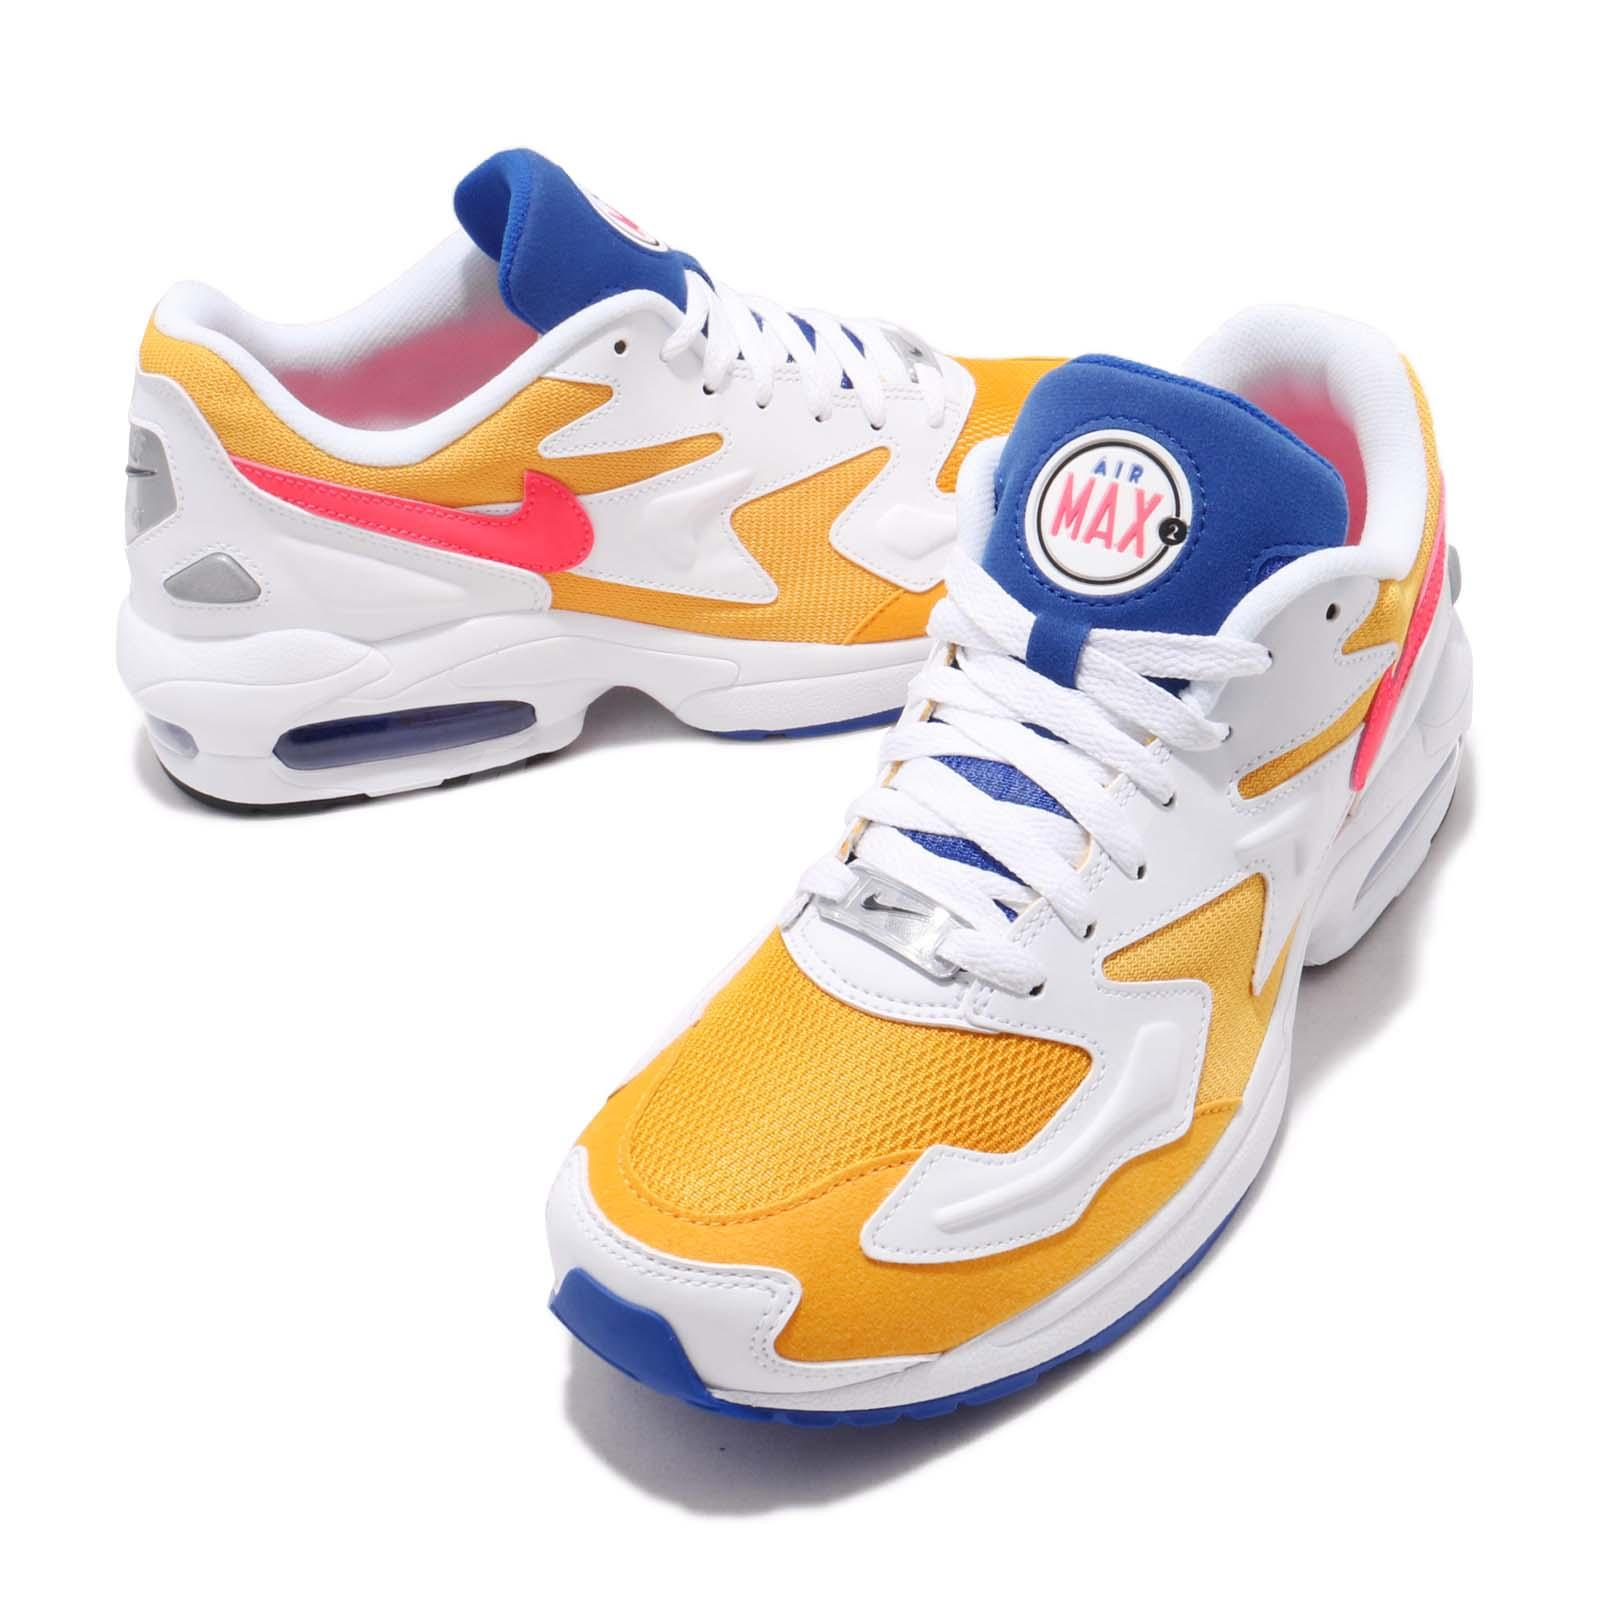 finest selection 827dc 77130 Nike Air Max2 Light Gold Yellow Crimson Blue Mens Running Shoes NSW ...